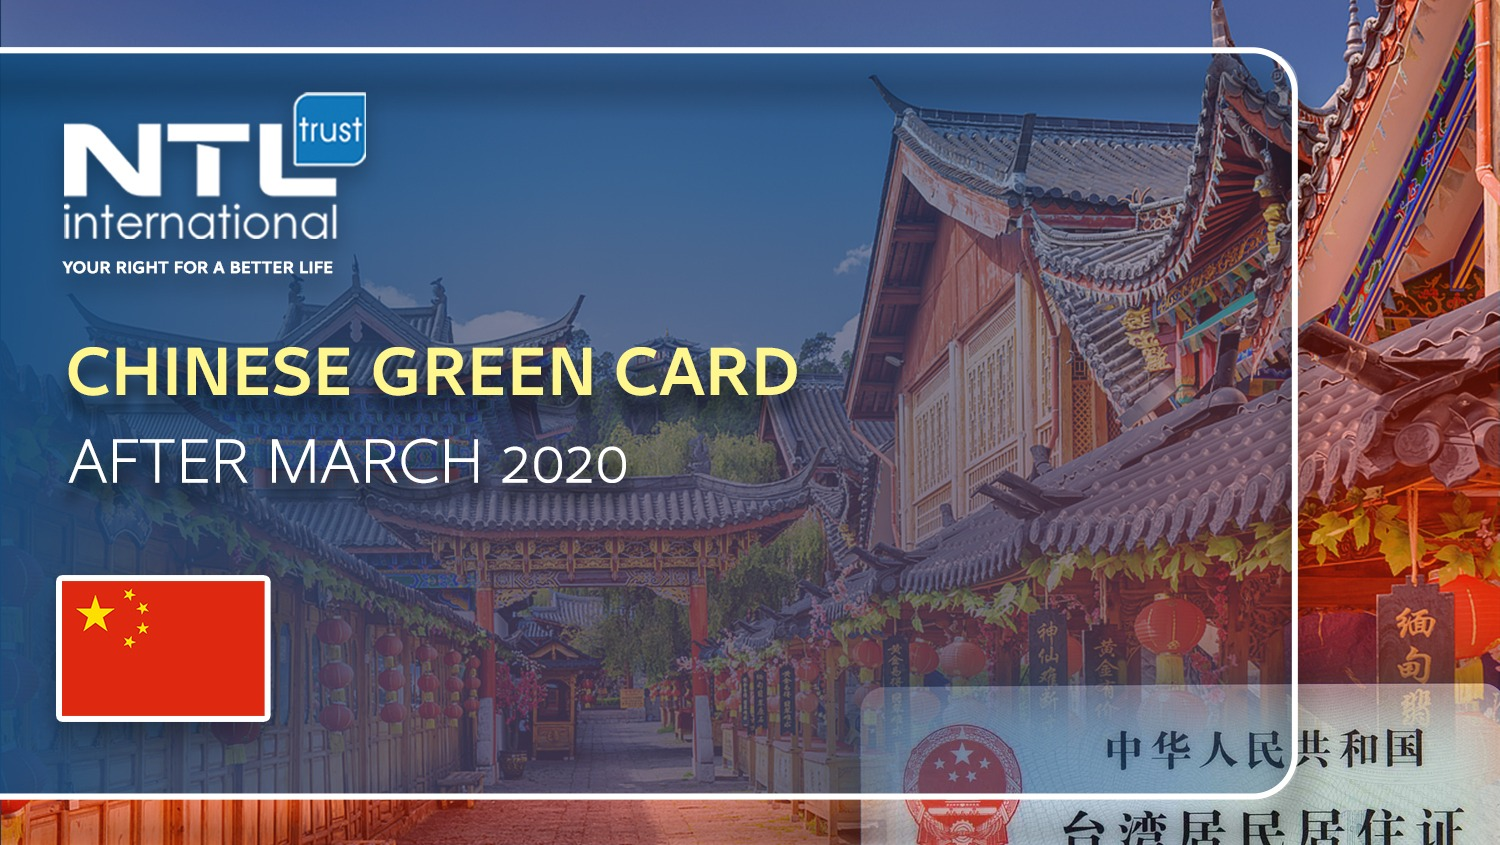 Chinese Green Card after March 2020 NTL international